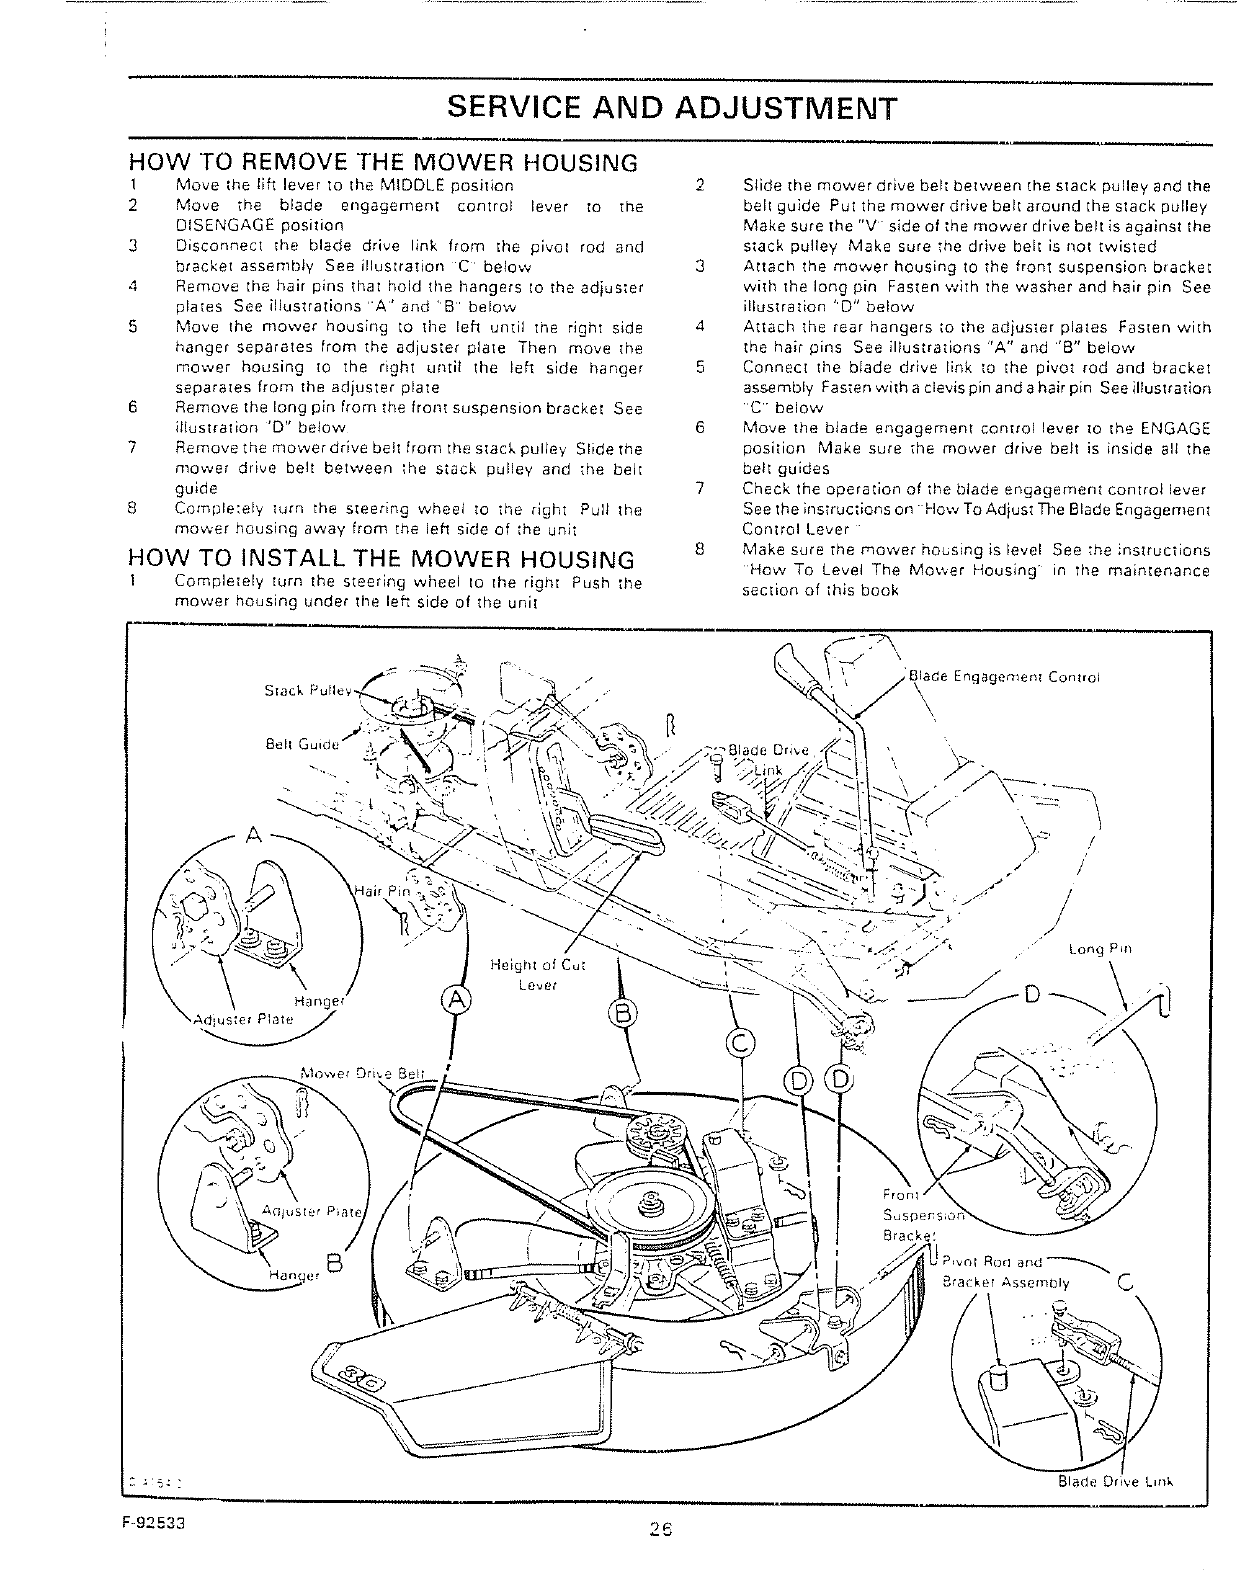 Page 26 of Sears Lawn Mower 502.25502 User Guide